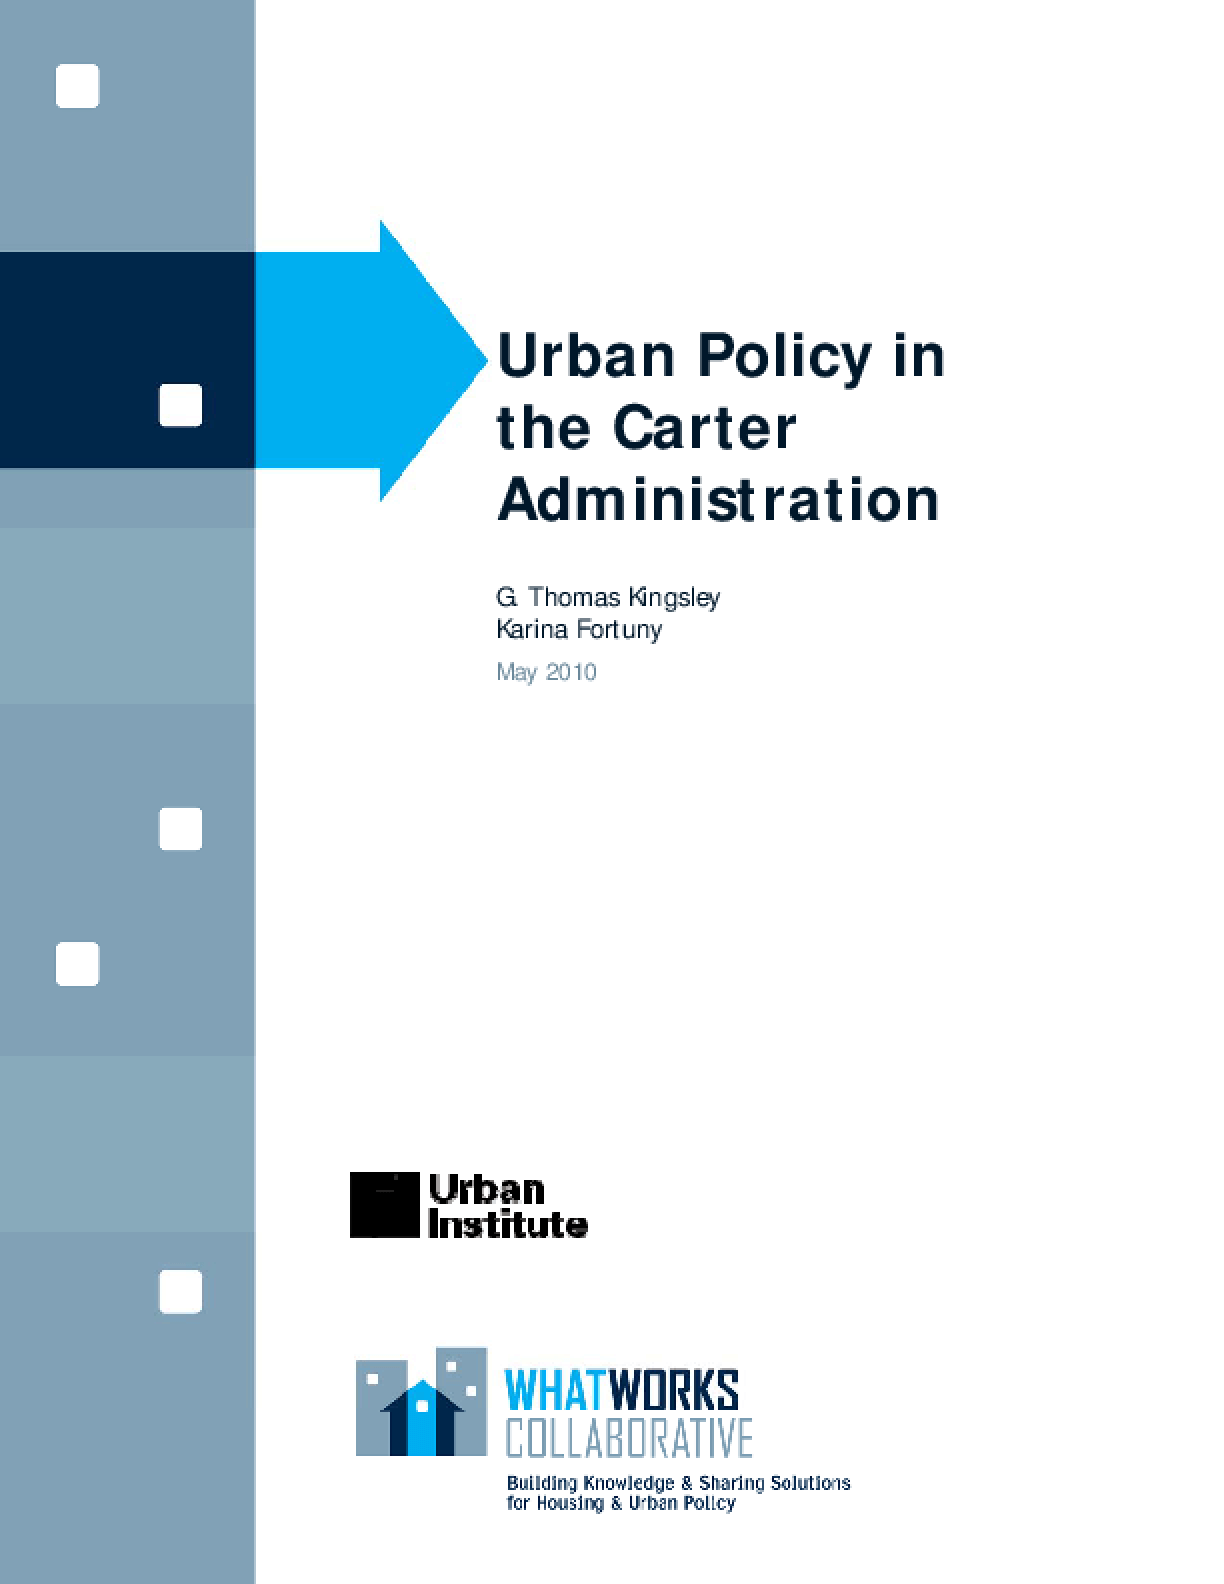 Urban Policy in the Carter Administration